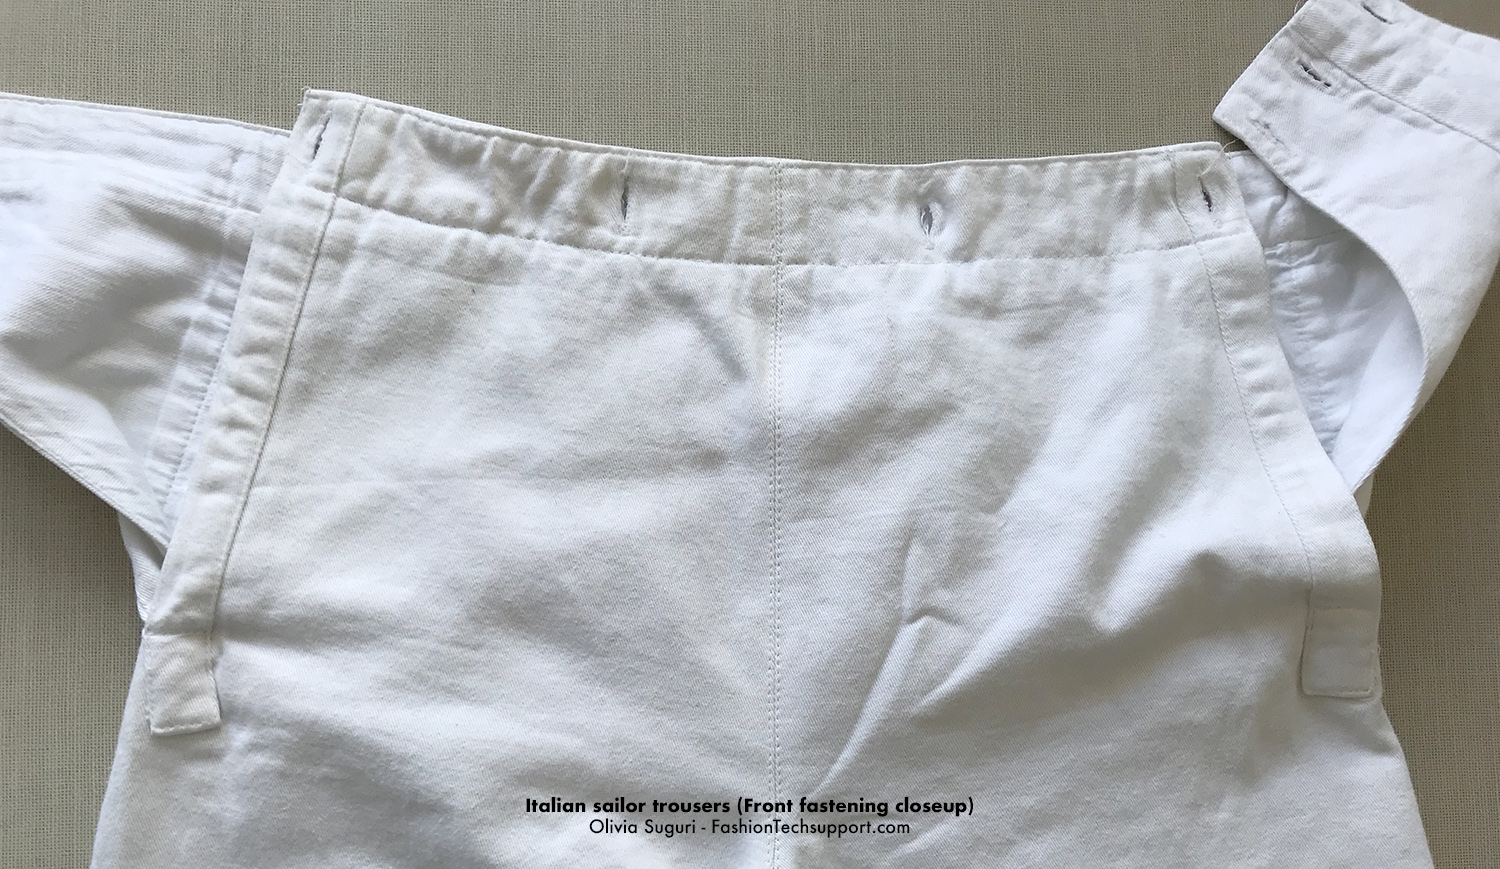 FashionTechsupport-sailor-trousers-IT-front-fastening-closeup.jpg